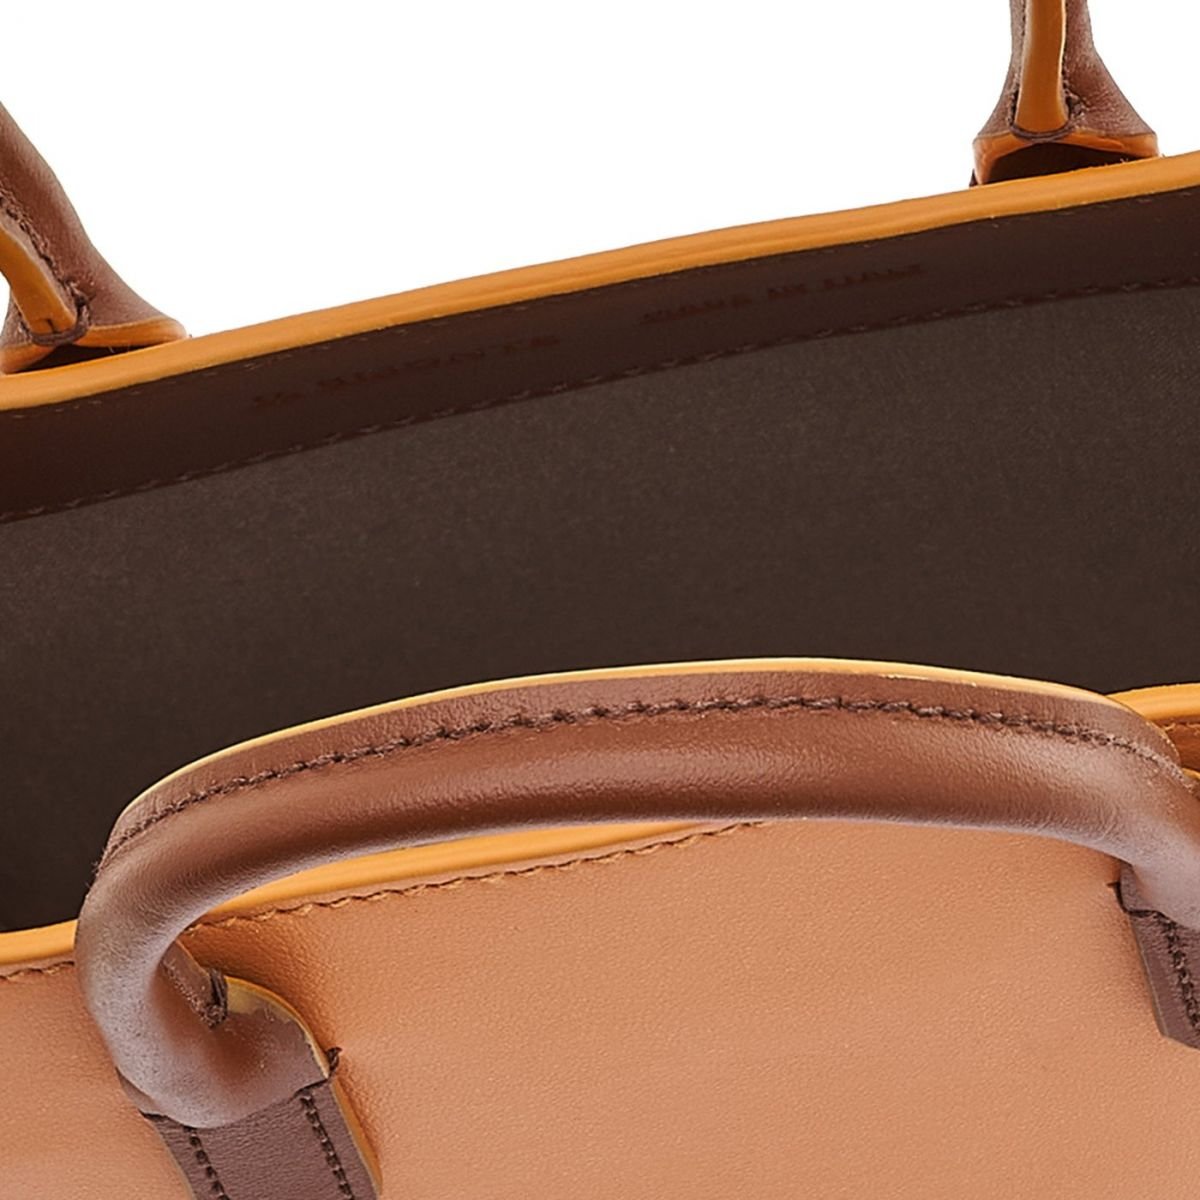 Sole Mini - Women's Handbag in Calf Leather color Tobacco/Natural - Fifty On line BHA009 | Details